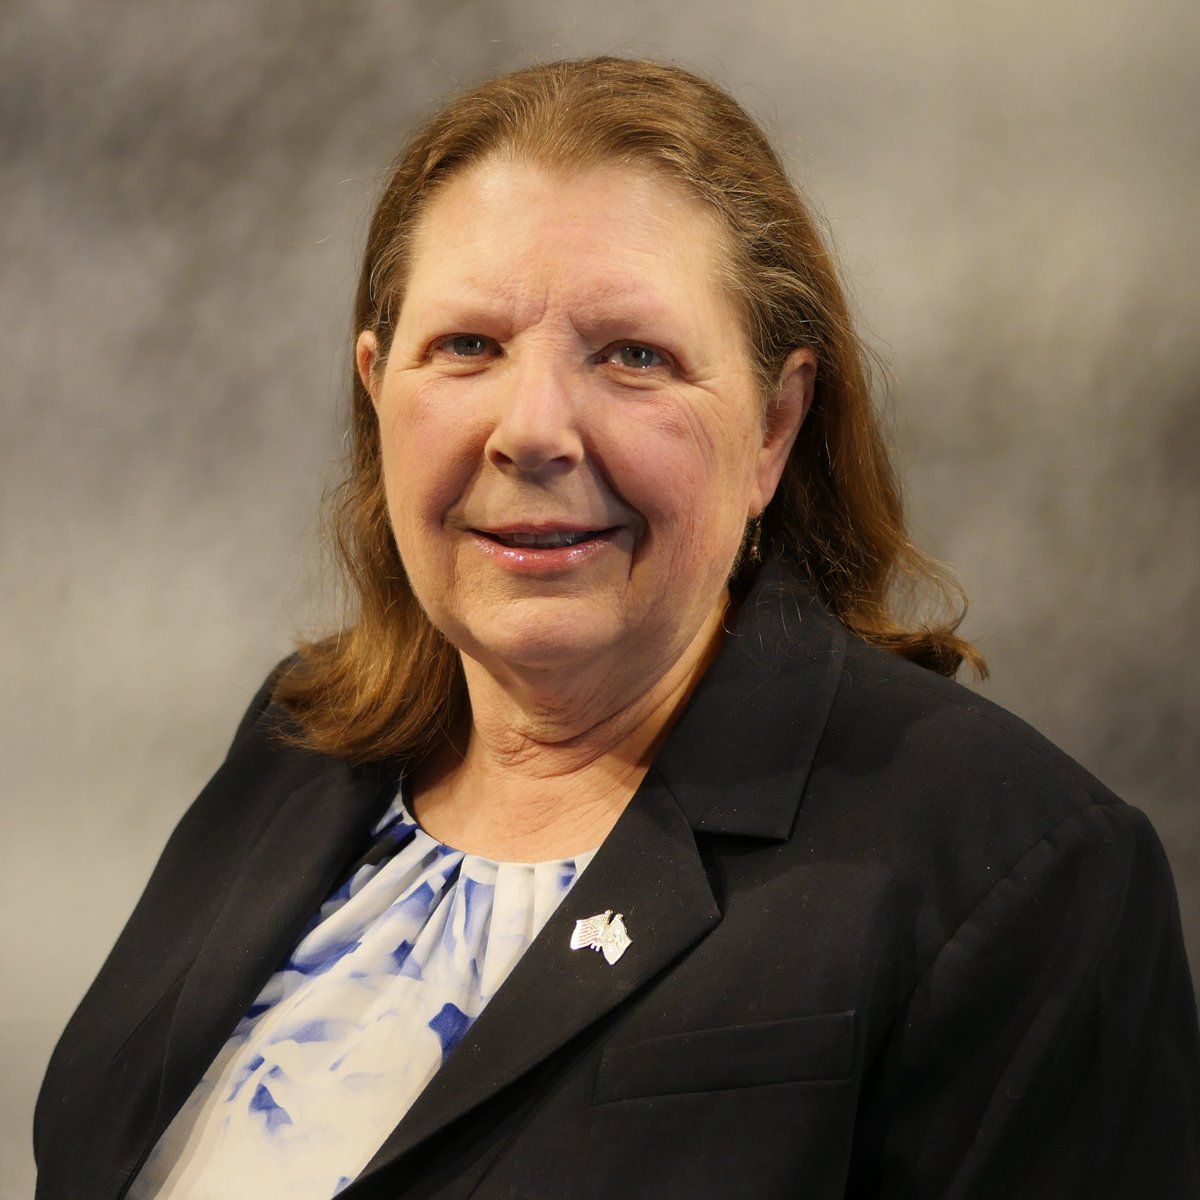 The final retirement recognition of the night is for Deputy County Administrator for Human Services Sarah Snead. She is retiring after a distinguished career as a public servant for 42 years. Thank you for your service and you will be greatly missed!